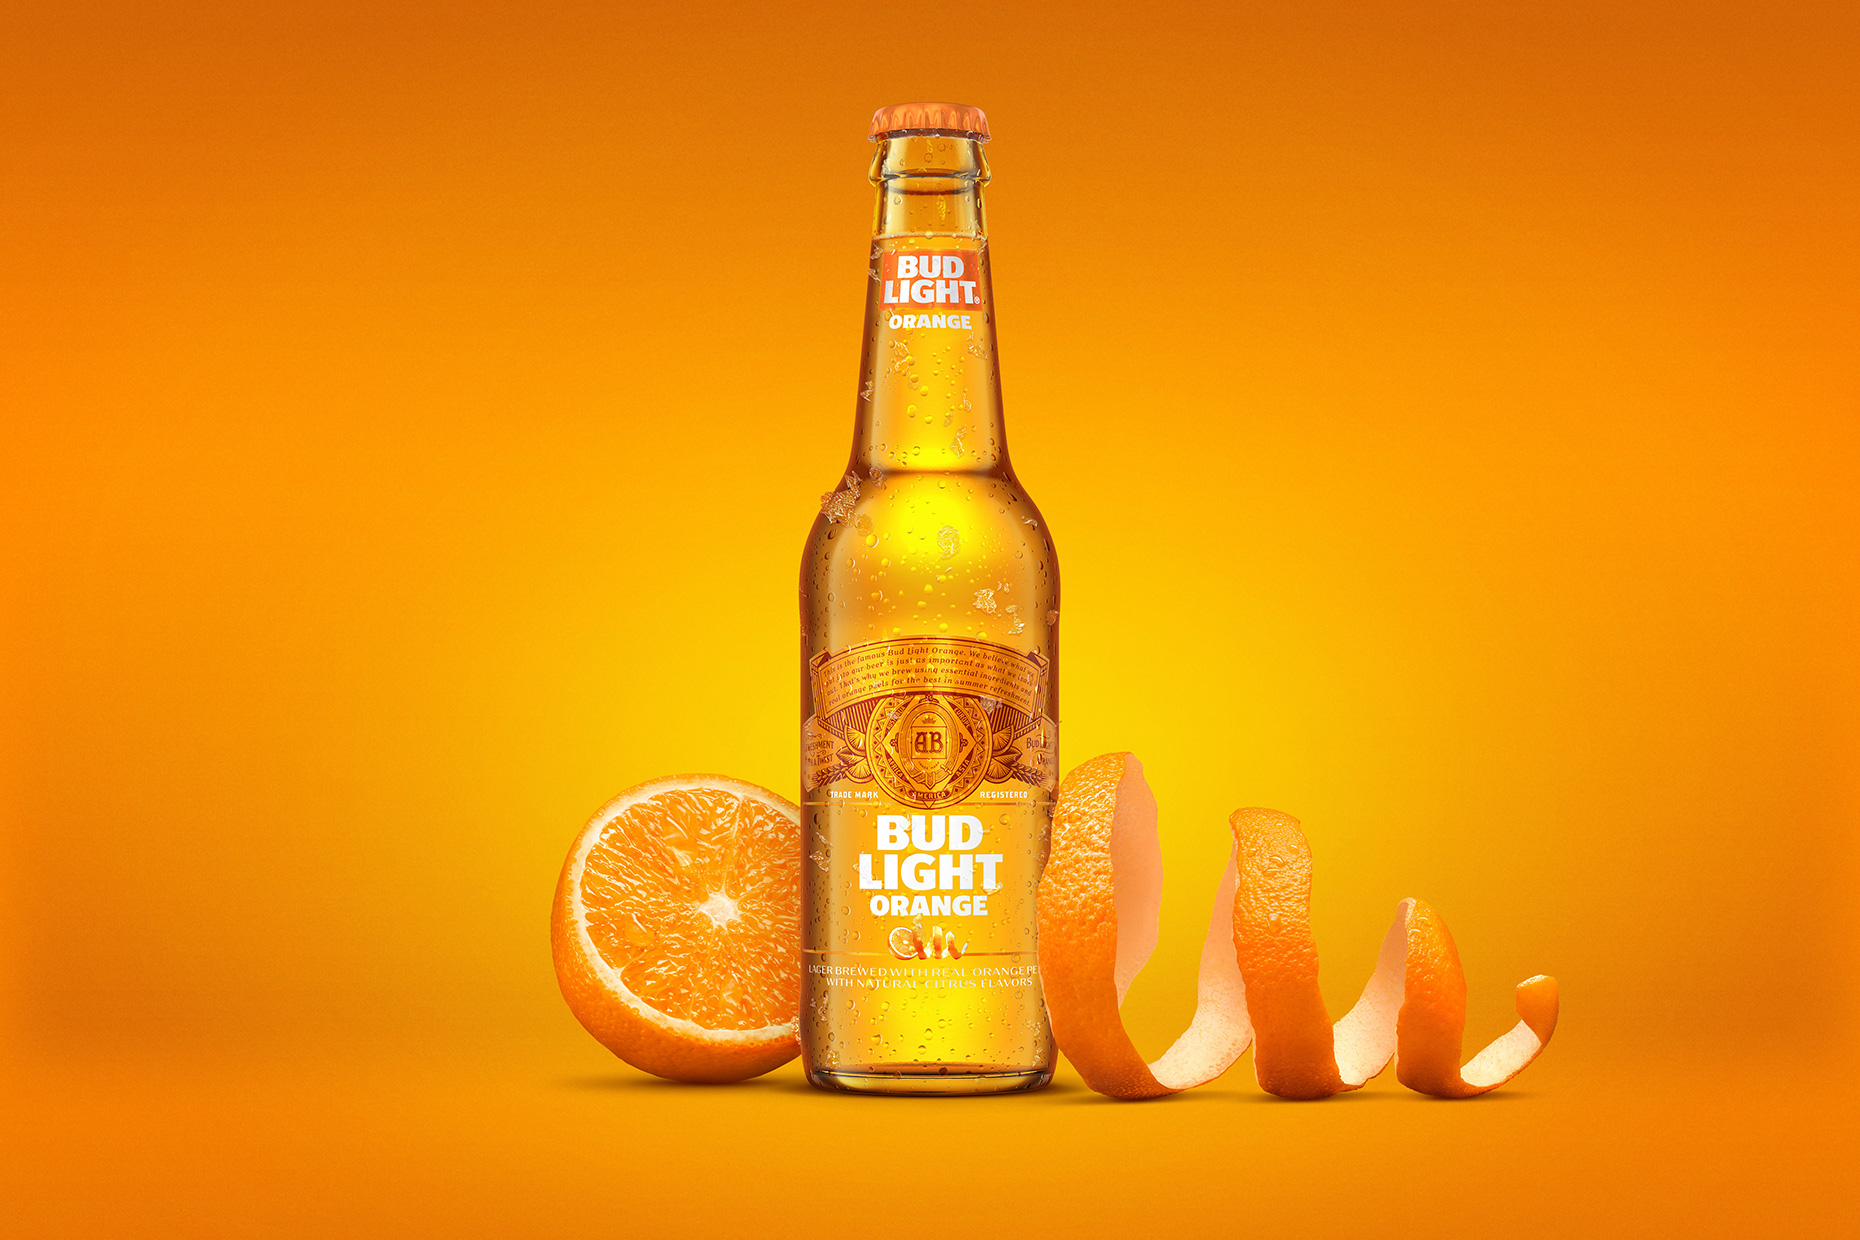 Bud Light Beer with orange peels, styled by Drink Stylist Takako Kuniyuki